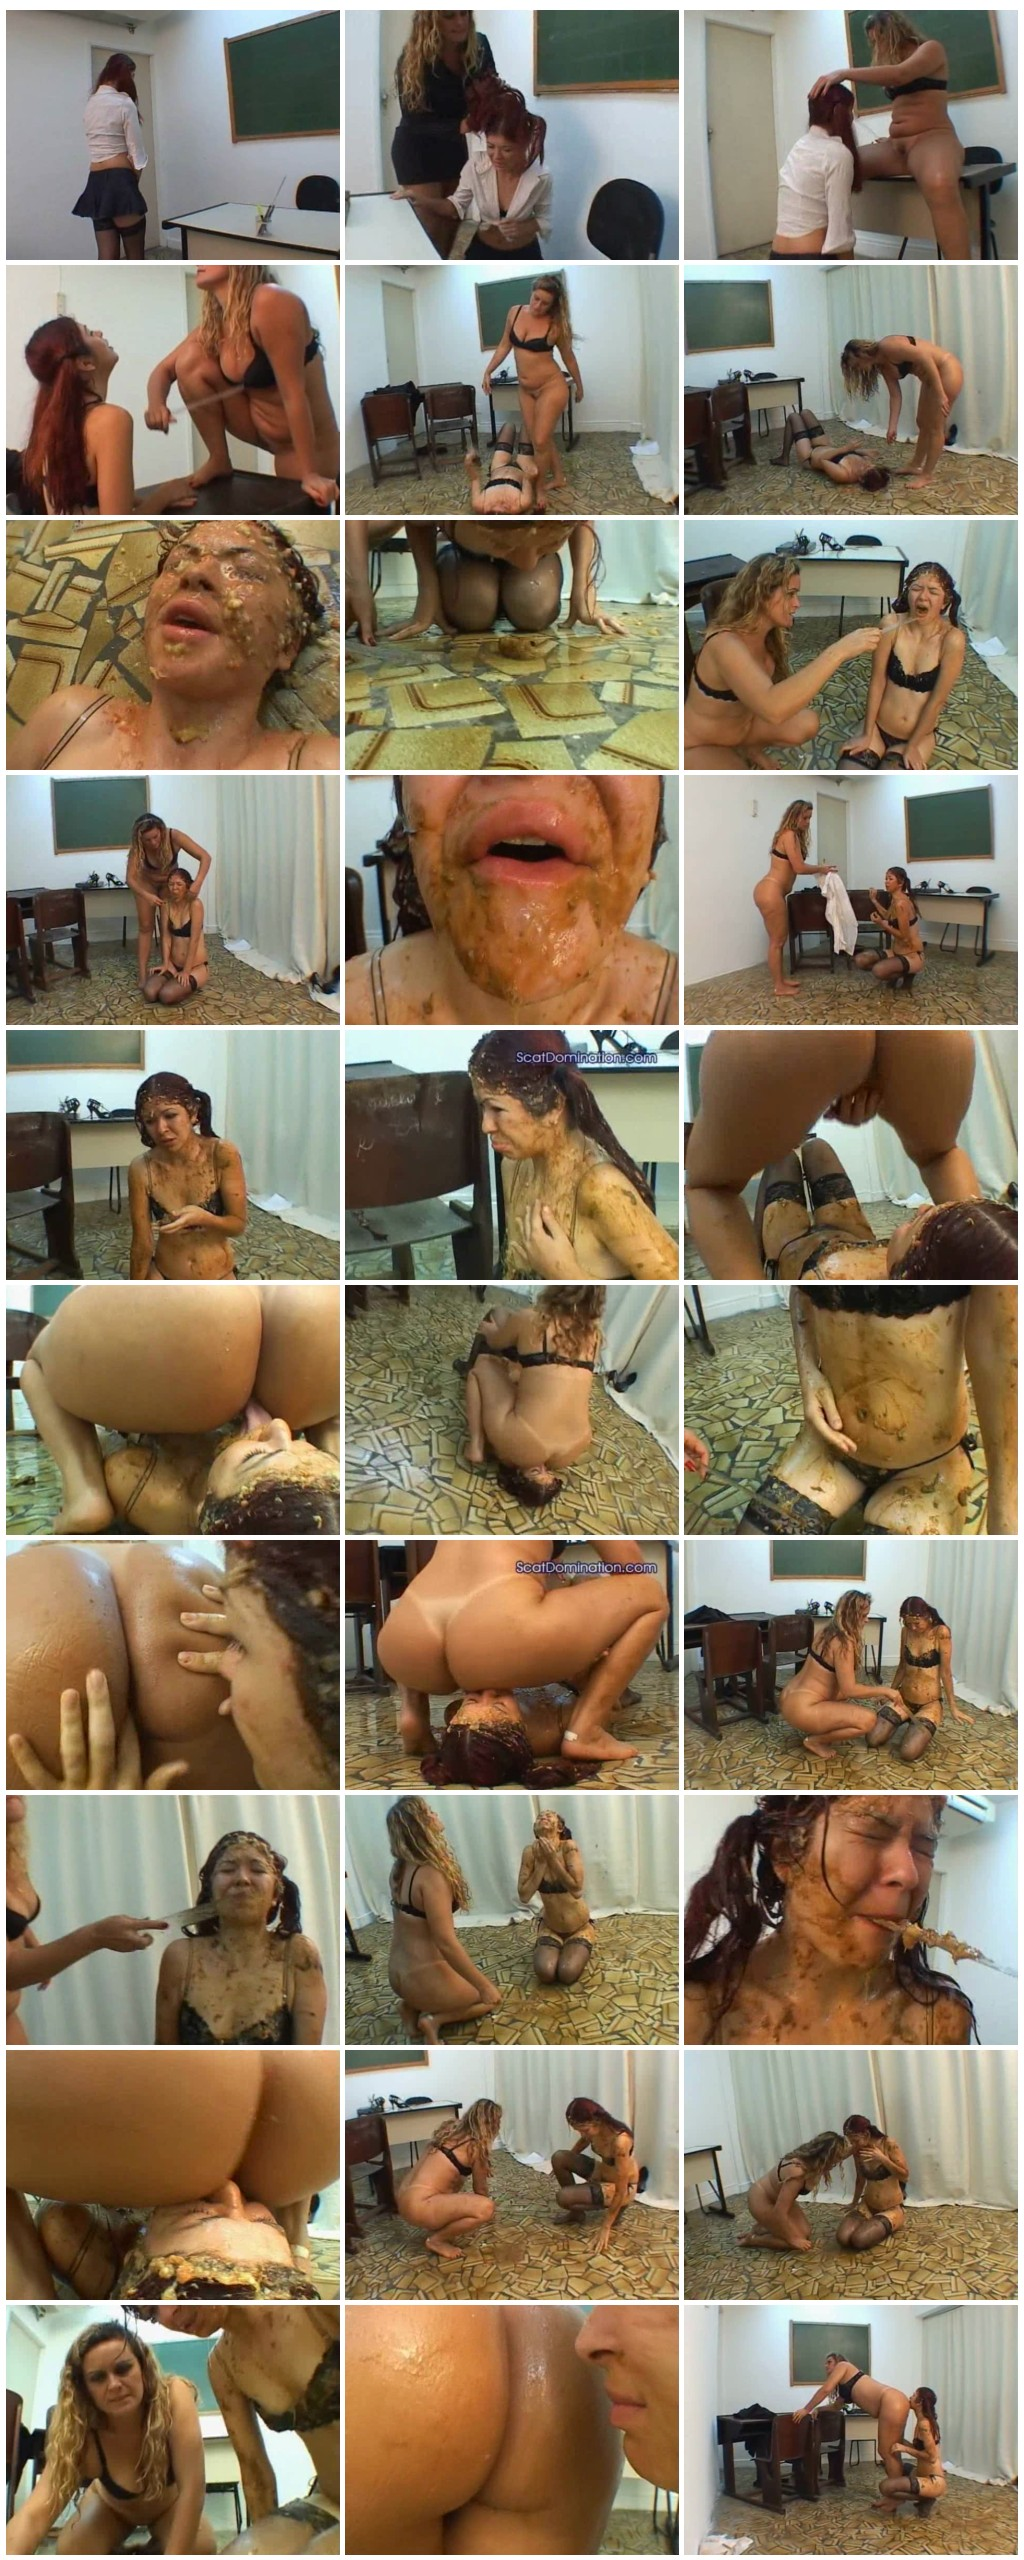 Sd 256 I Hate You Teacher Scat Lesbians shit defecation pissing SmearingLick assFacesitting Fisting DominationHumiliationsEat shitDrink pee MasturbationVomiting thumb - Sd-256 I Hate You Teacher [Scat Lesbians, shit, defecation, pissing, Smearing,Lick ass, Facesitting, Domination, Humiliations, Eat shit, Masturbation,Vomiting]